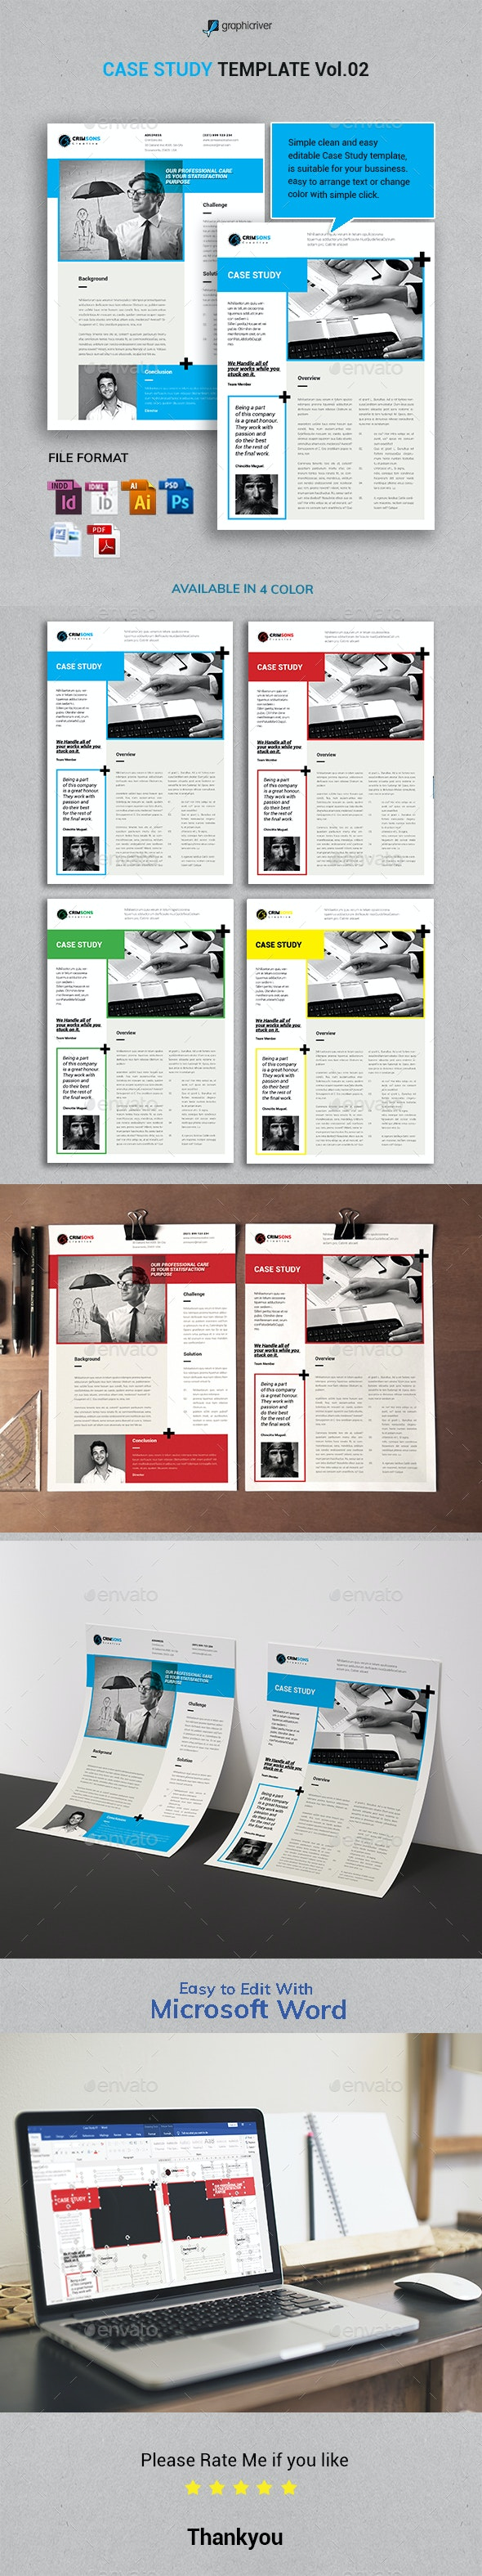 Case Study Template Vol.2 - Newsletters Print Templates